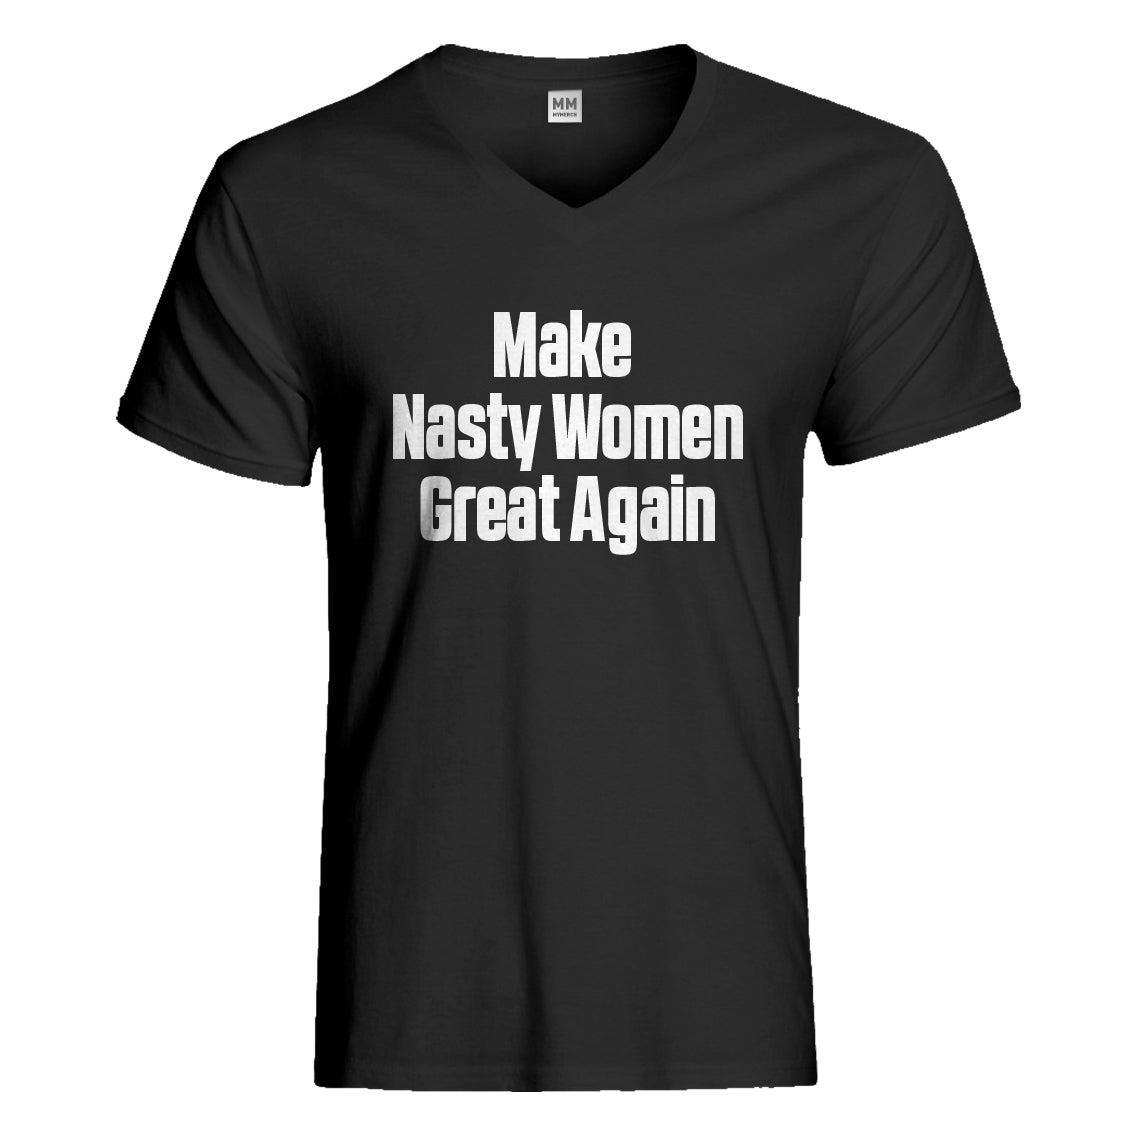 Mens Make Nasty Women Great Again Vneck T-shirt